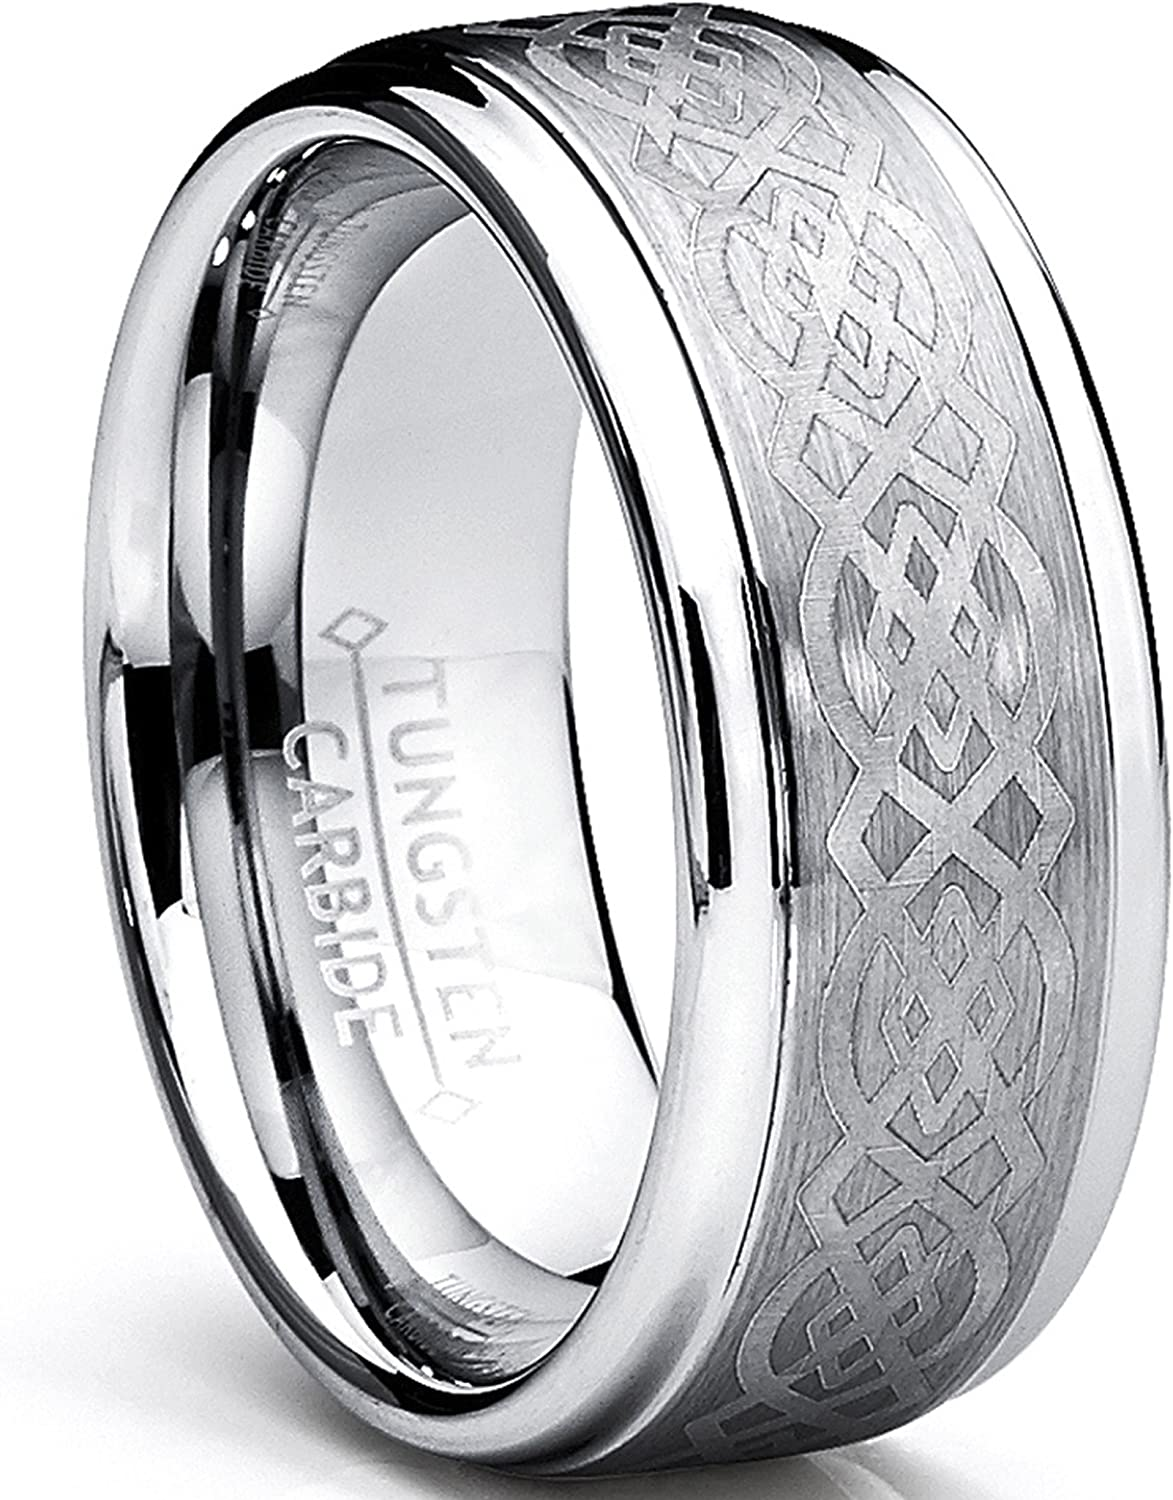 8MM Men's Tungsten Carbide Ring with Celtic Design Sizes 6 to 15